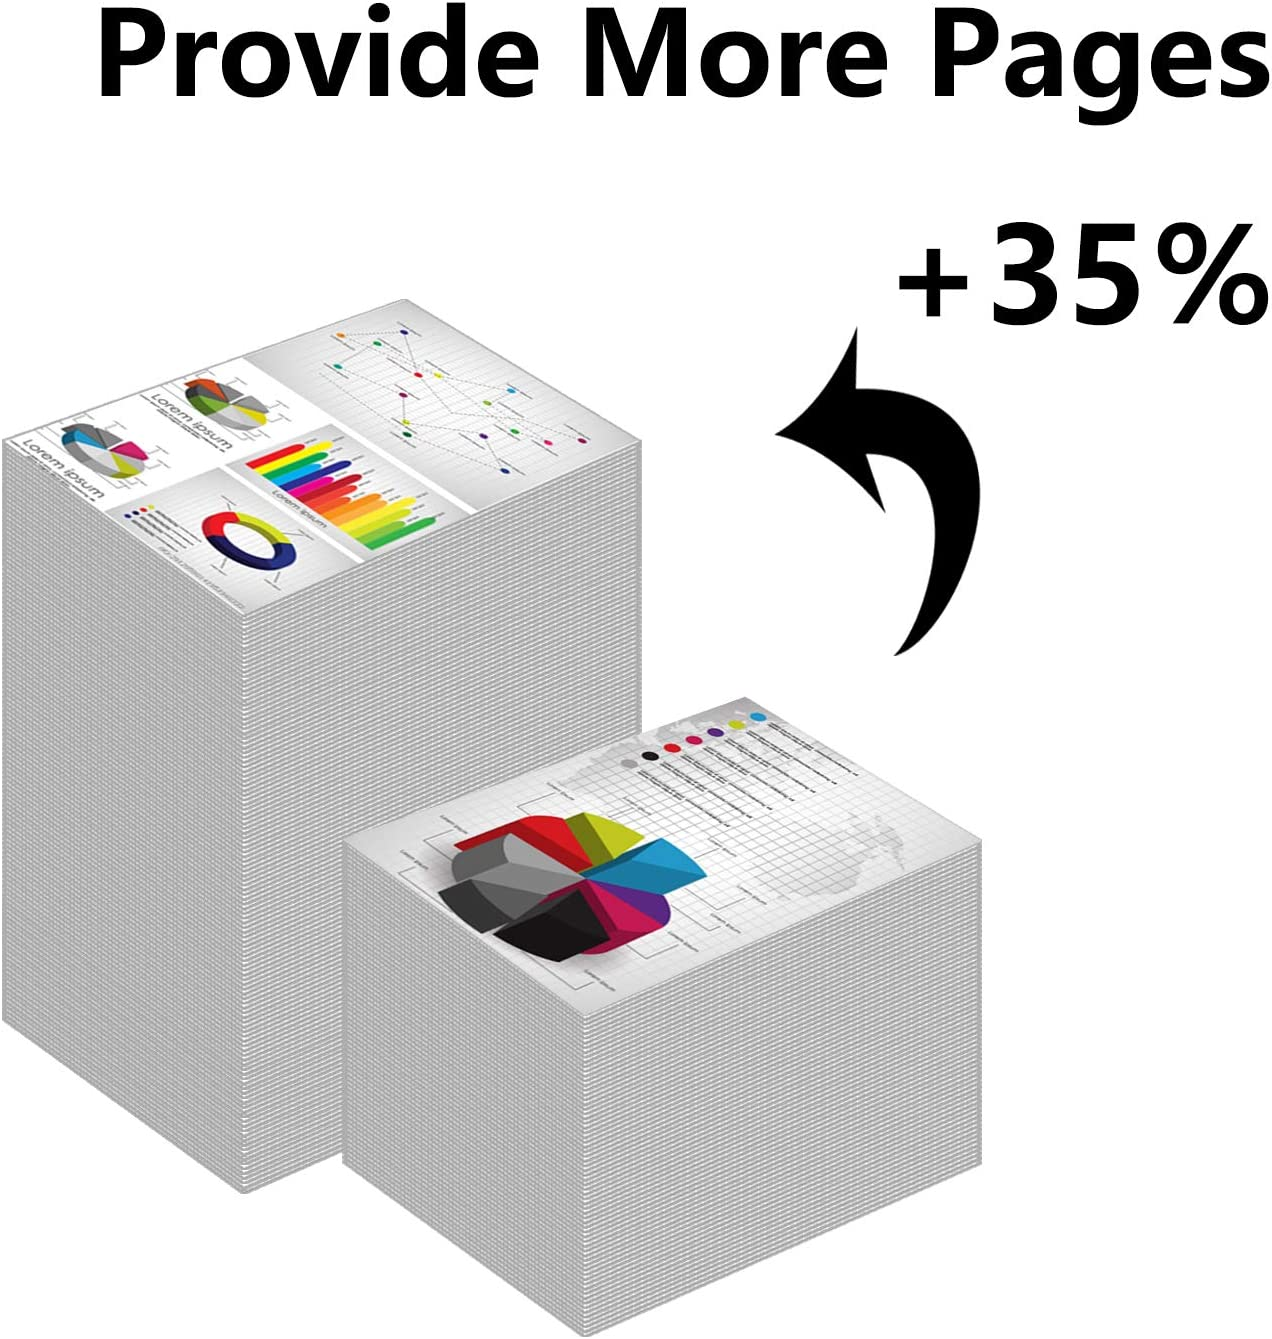 M254dn 8 Pack 202X|CF500X CF501X CF502X CF503X Toner Cartridge Replacement for HP Color Laserjet Pro M254nw,M254dw MFP M281fdn 2BK+2C+2M+2Y M281fdw MFP M281cdw Printer,Sold by AlToner MFP M280nw